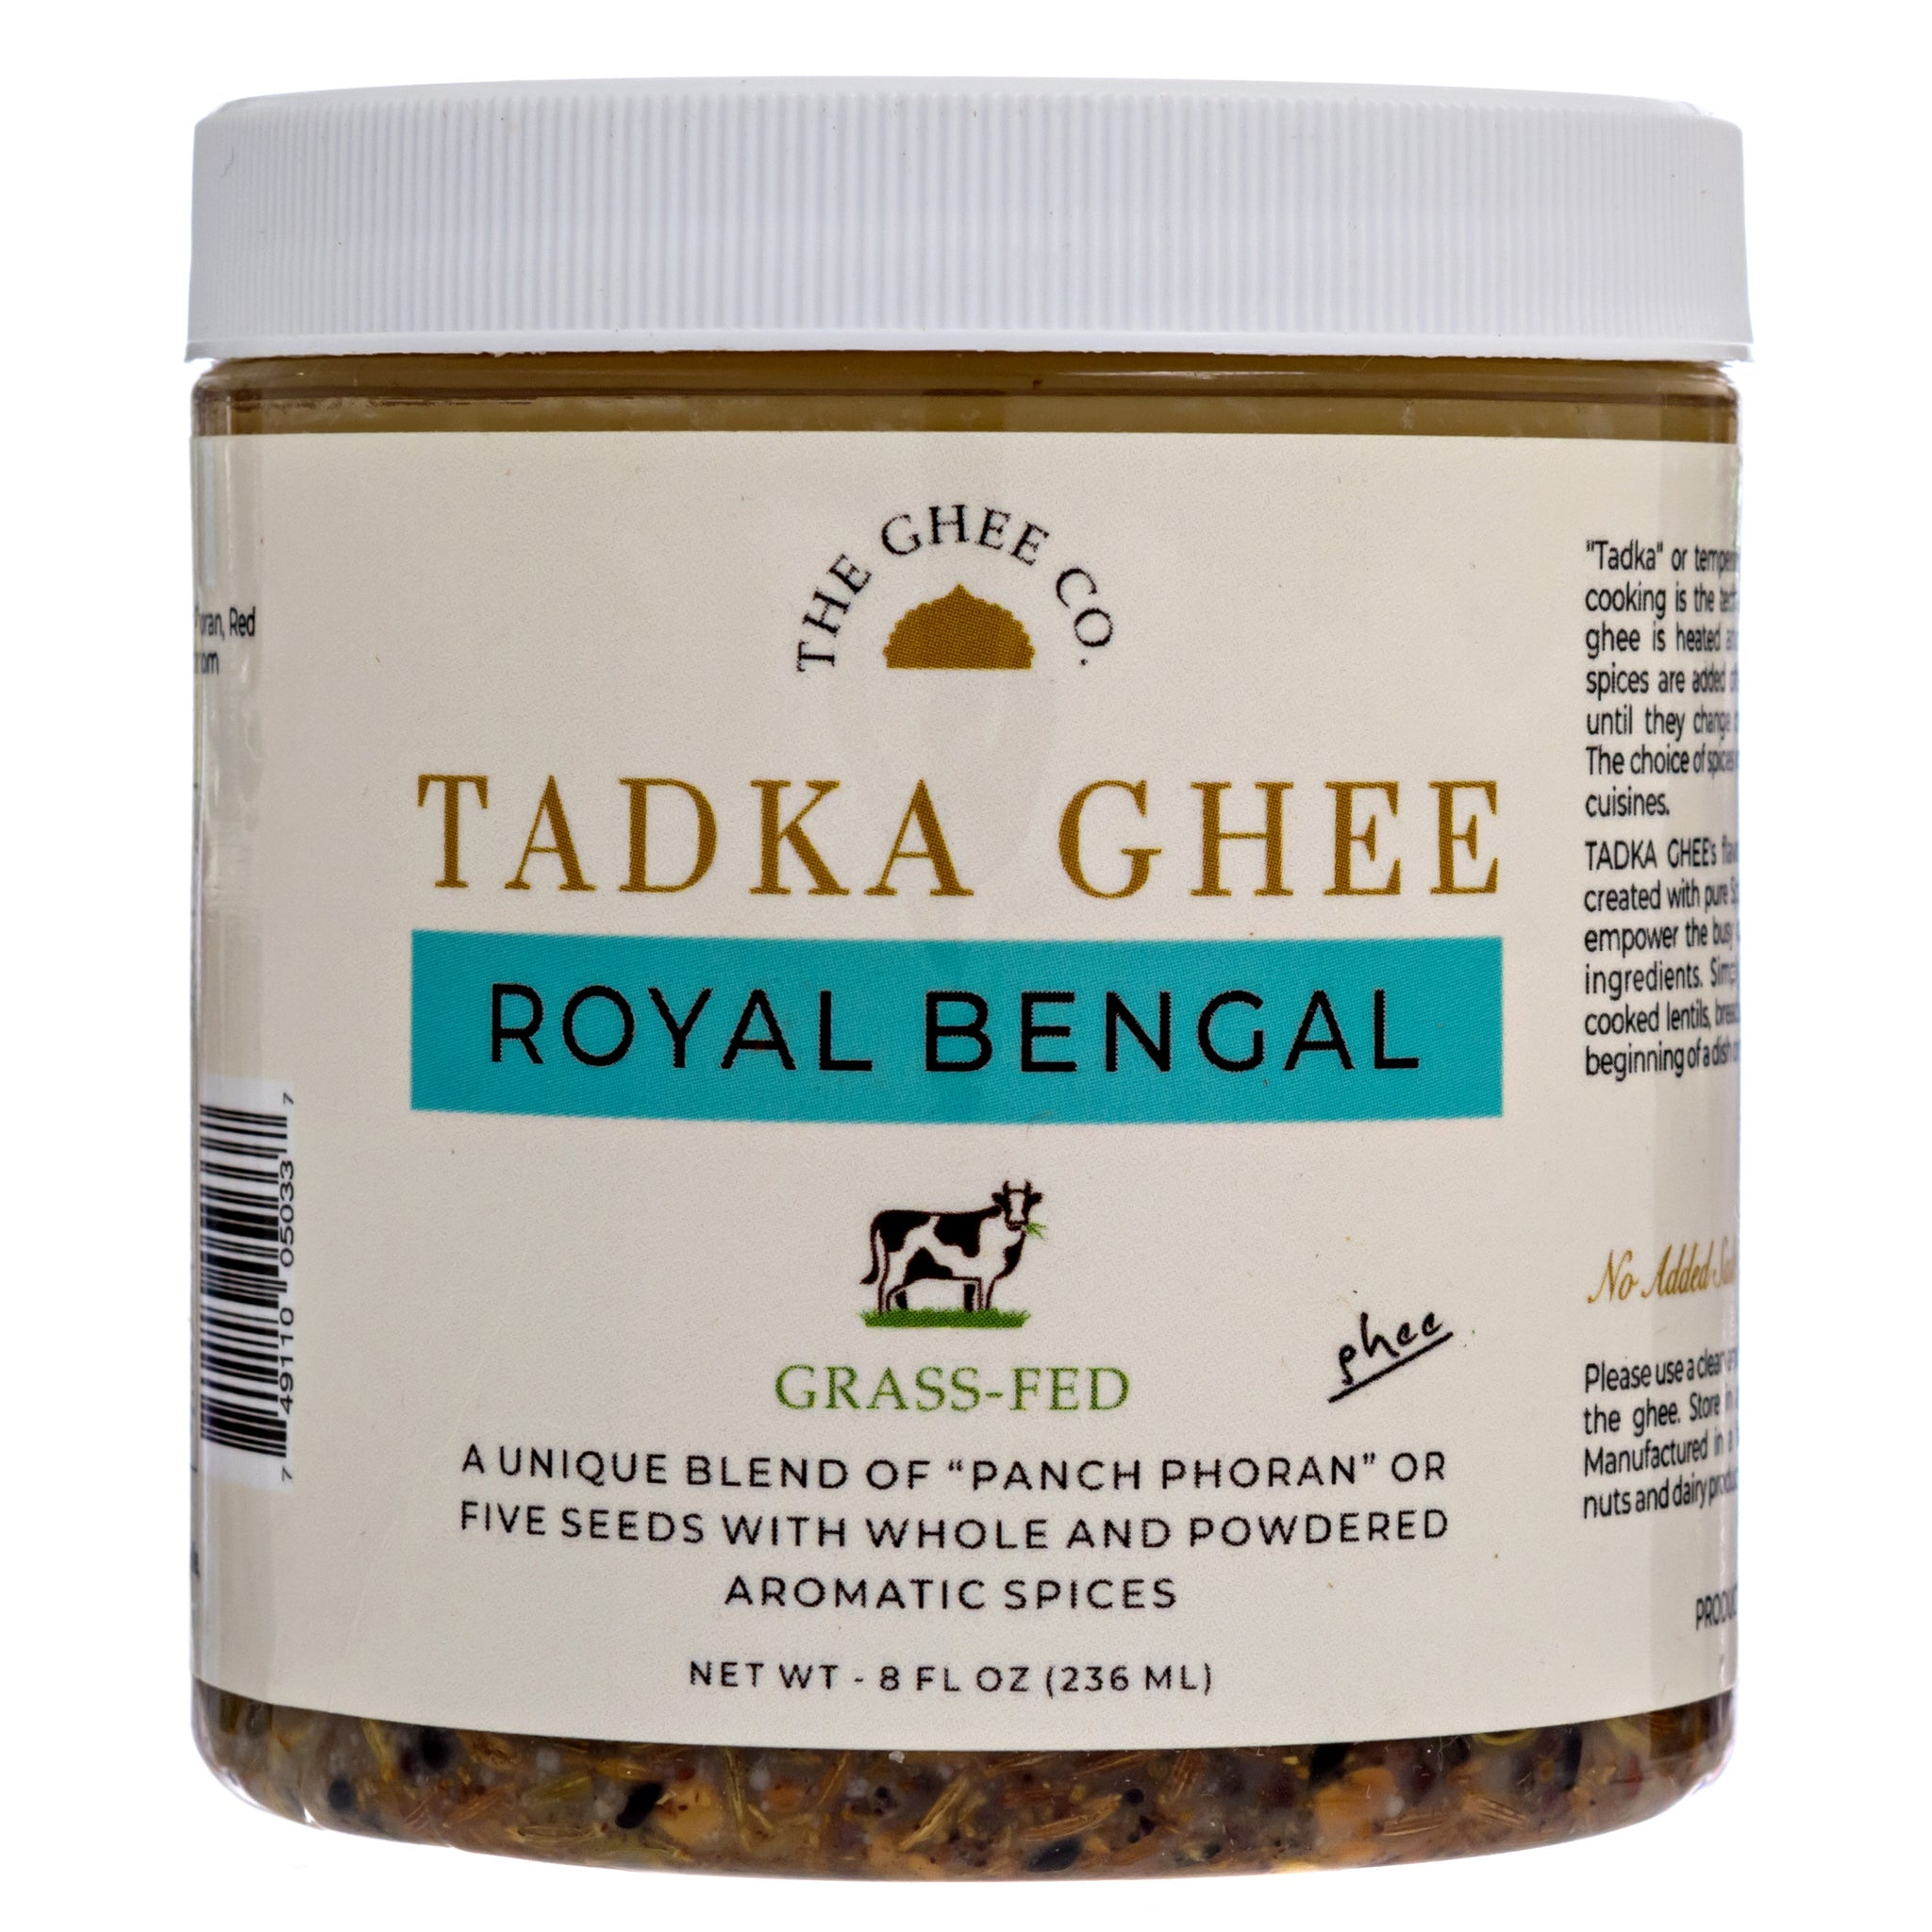 Tadka Ghee - Royal Bengal